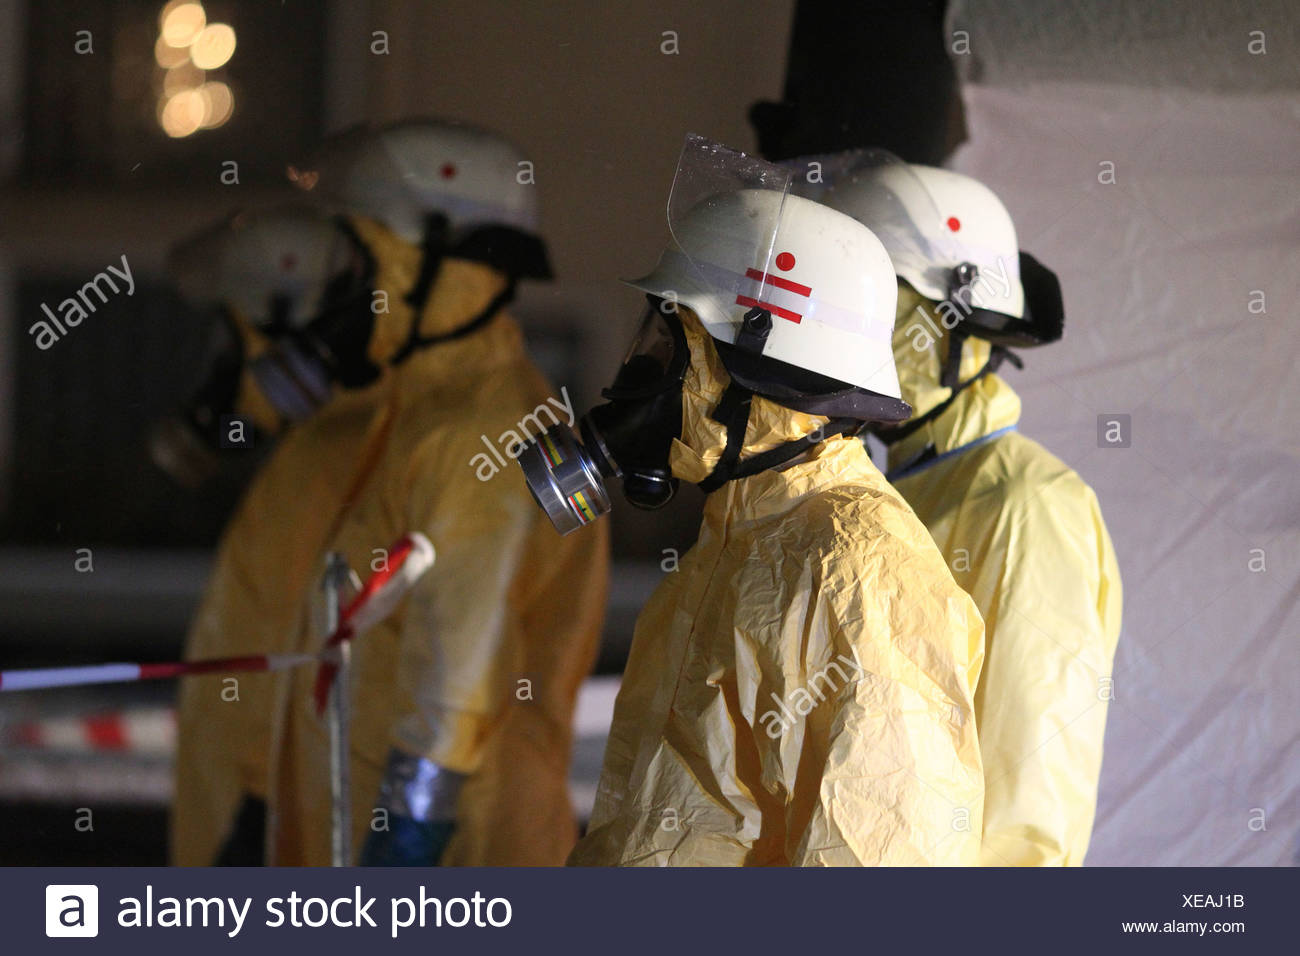 Firefighters equipped for containment of a hazardous substances wearing protective clothing, helmets and respirator masks - Stock Image